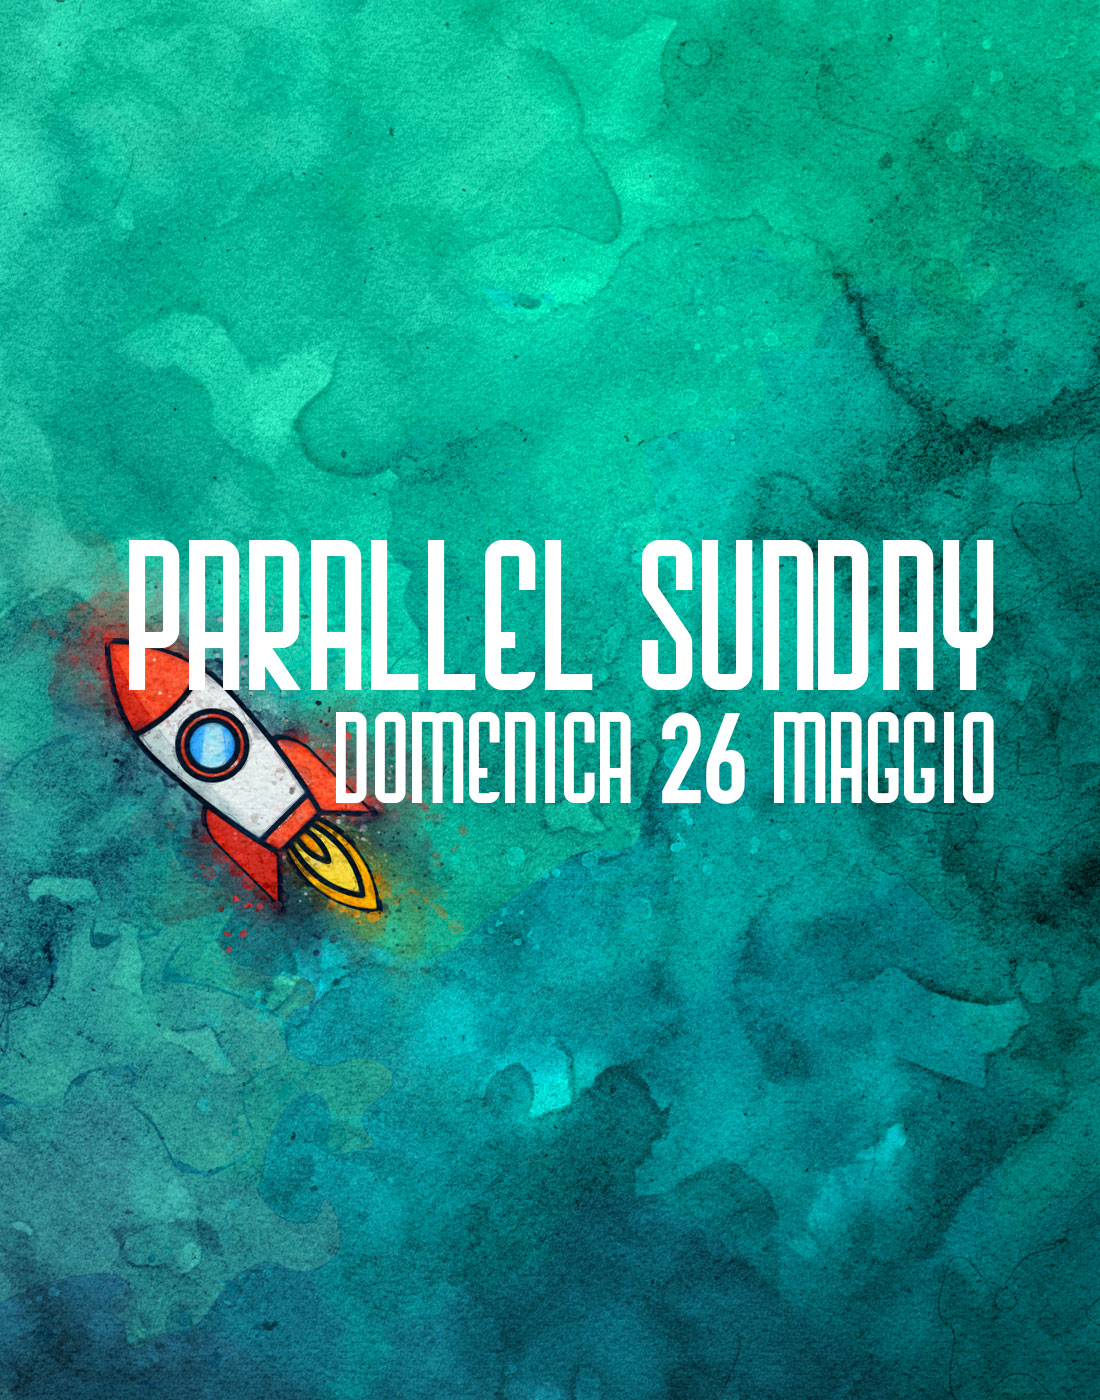 copertina-verticale-parallel-sunday-web-2019